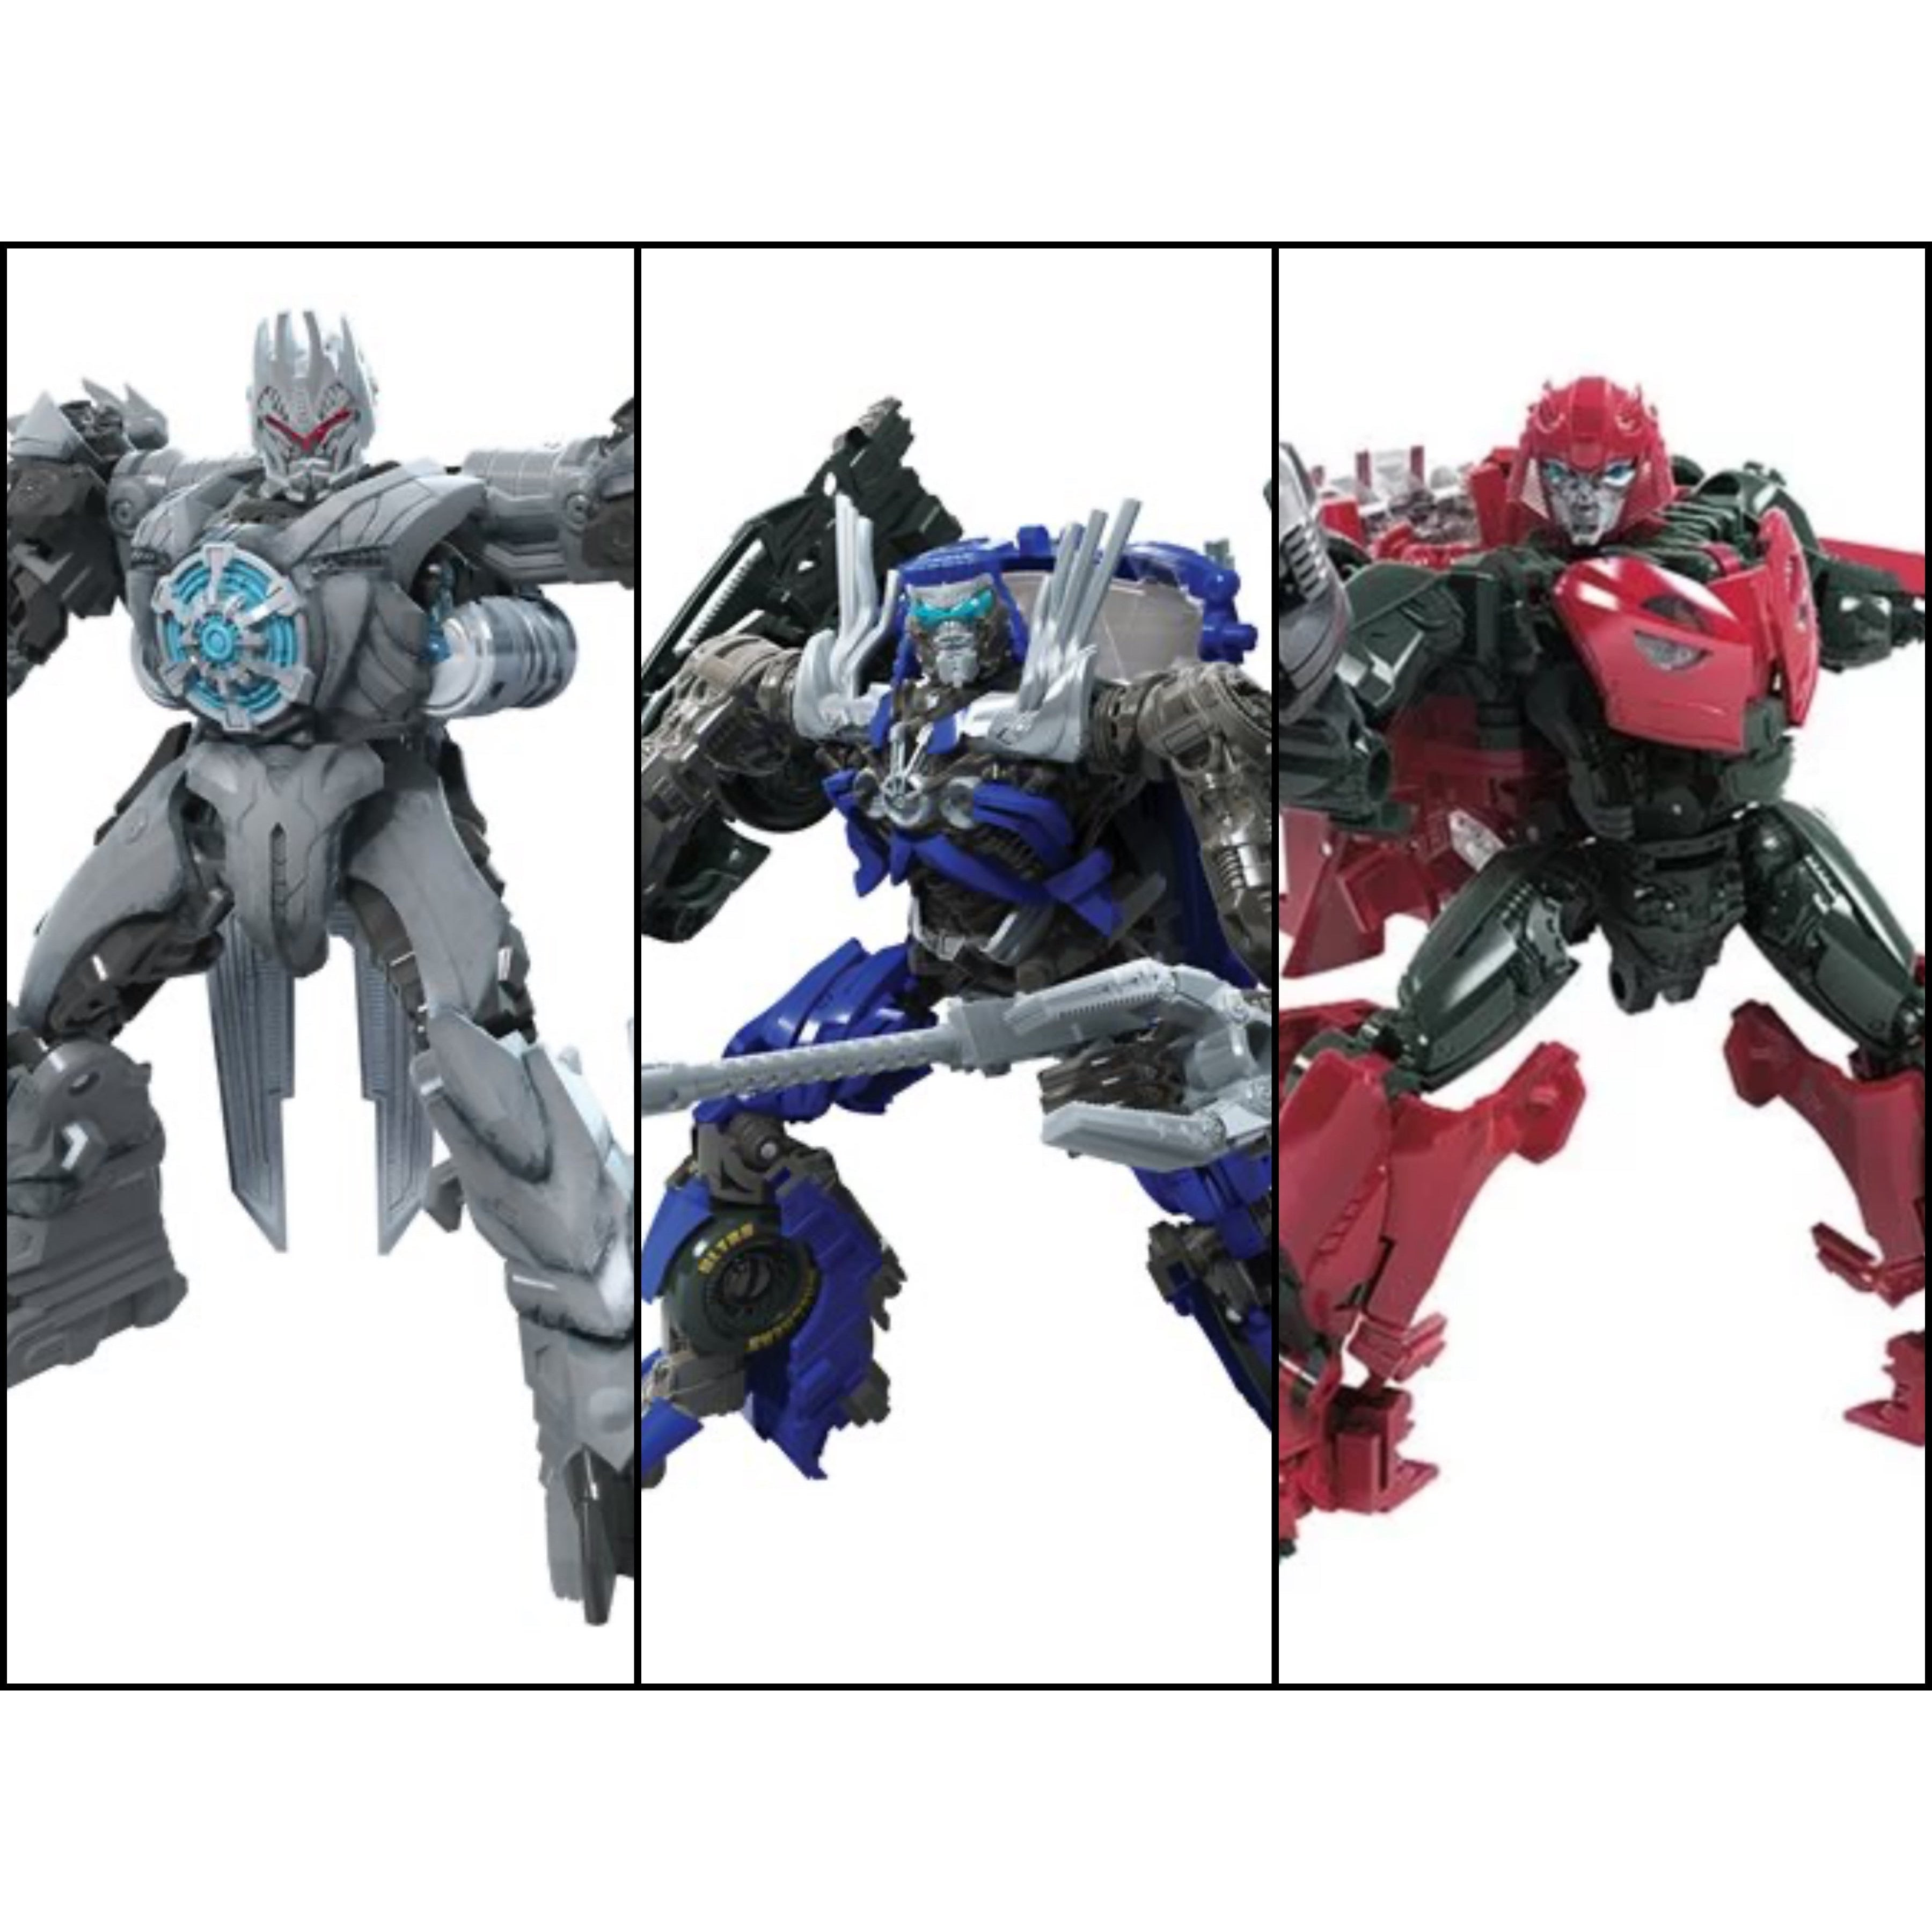 Image of Transformers Studio Series Premier Deluxe Wave 10 - Set of 3